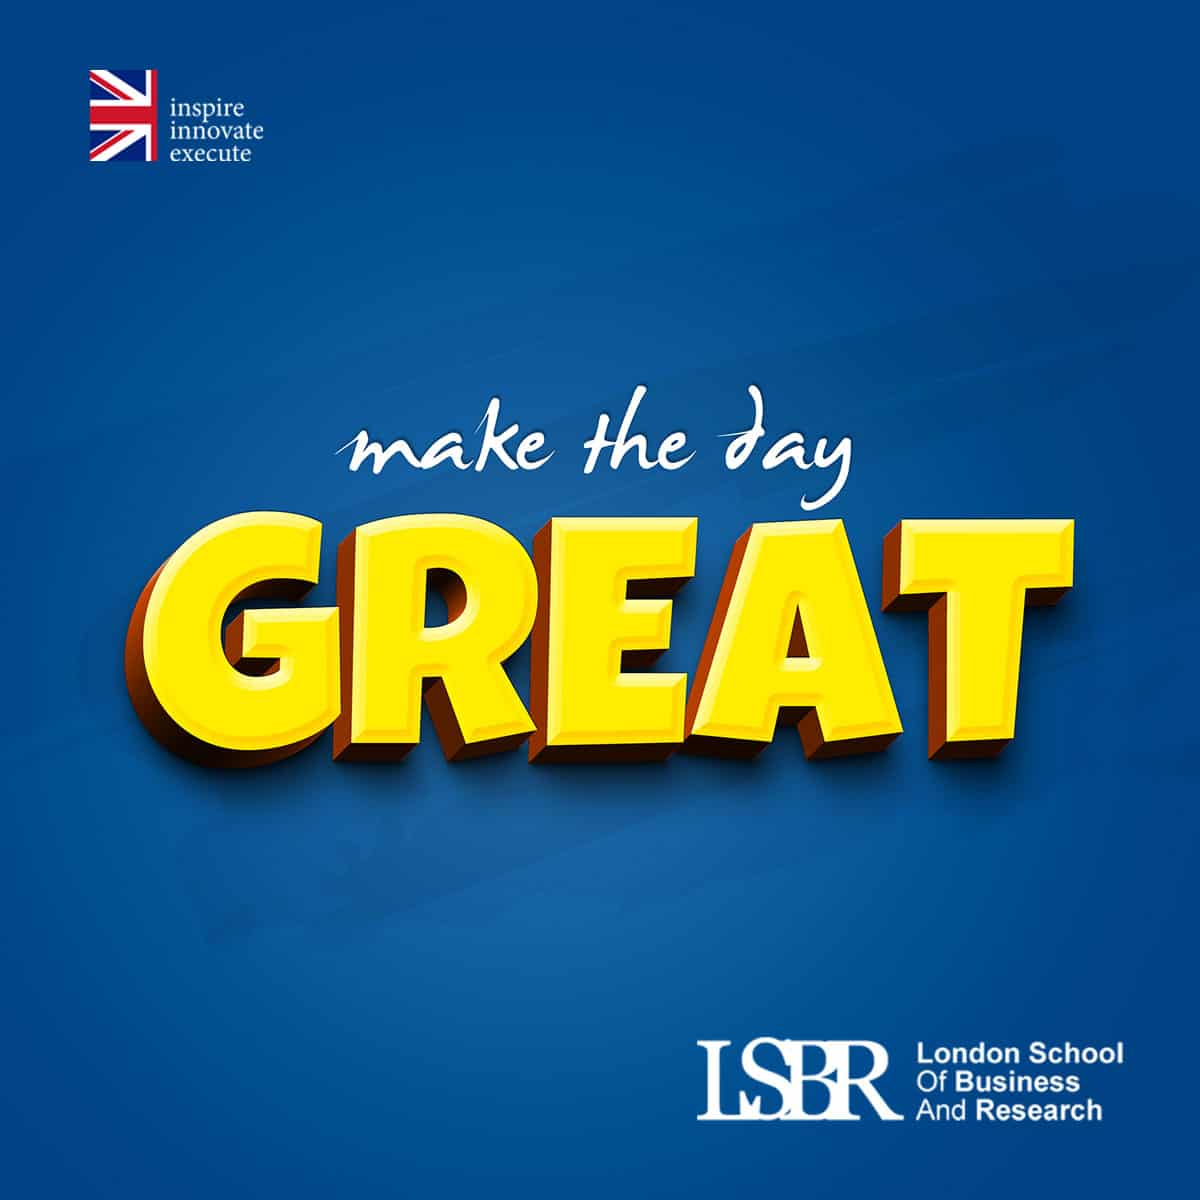 LSBR Motivational Quote - Make the Day Great